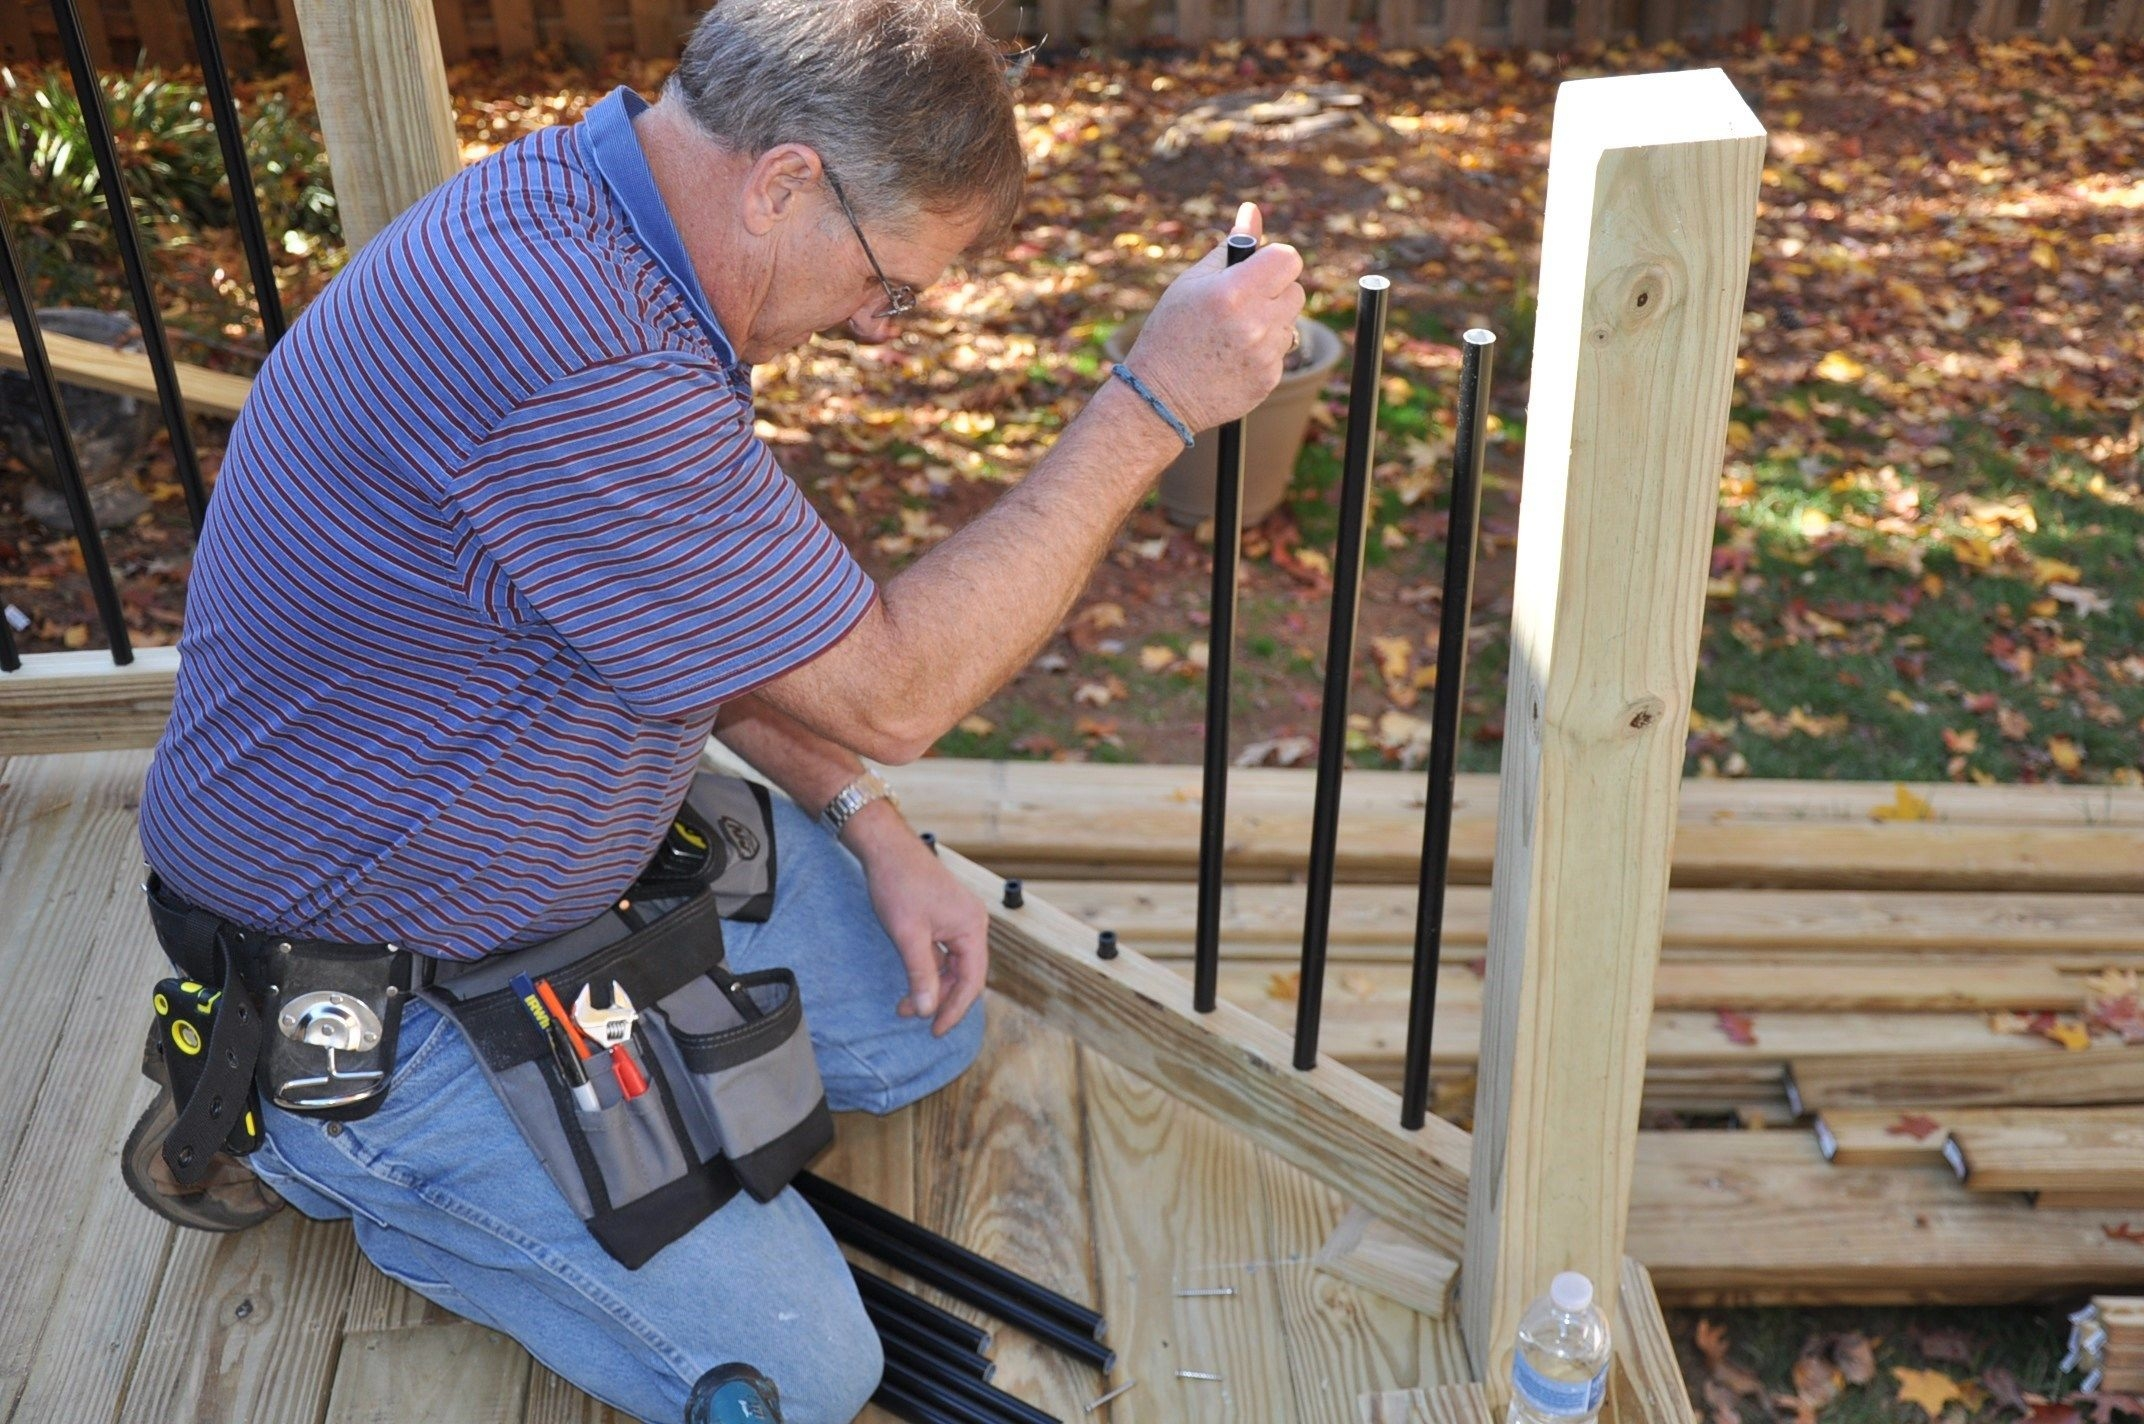 How To Install Deck Rail Balusters Decks Com   Installing Aluminum Stair Railing   Baluster   Deck Stair   Balcony Deck   Railing Systems   Pressure Treated